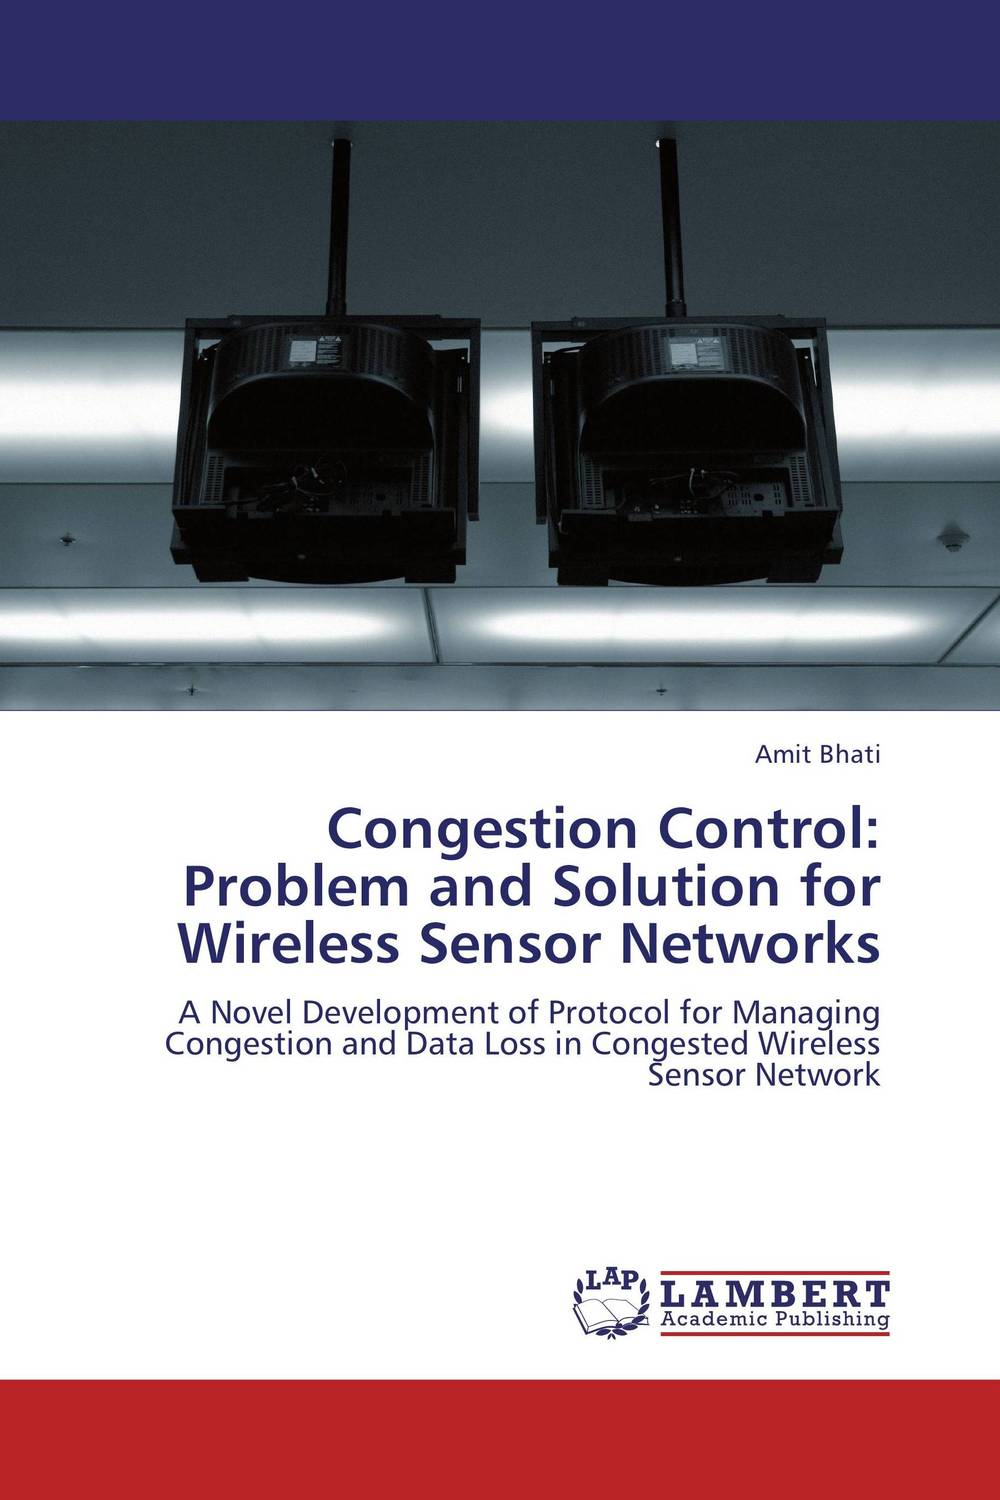 Congestion Control: Problem and Solution for Wireless Sensor Networks wireless data convergence